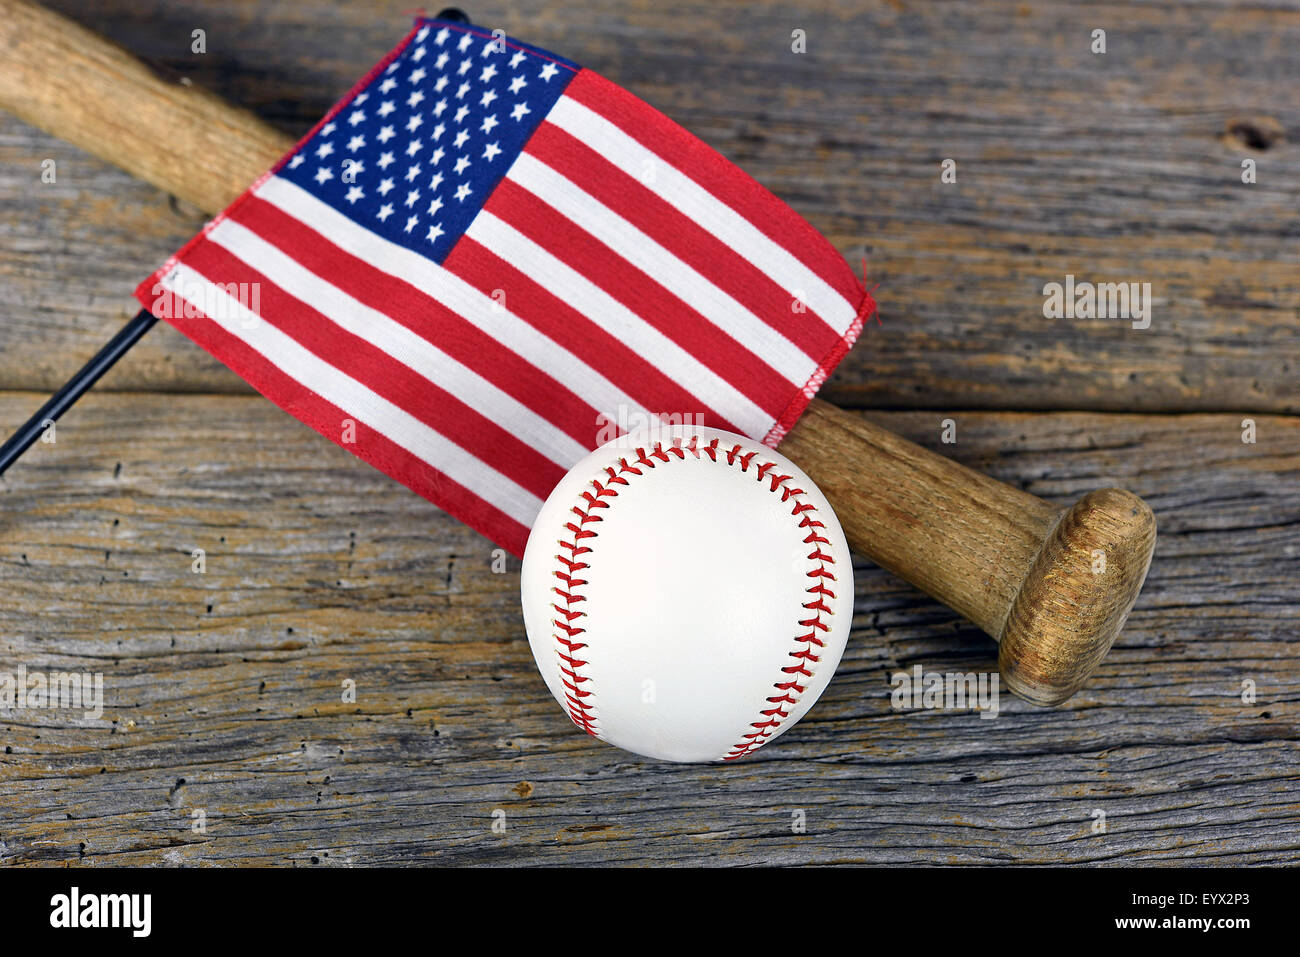 American Flag On Old Wooden Baseball Bat With White Rustic Barn Wood